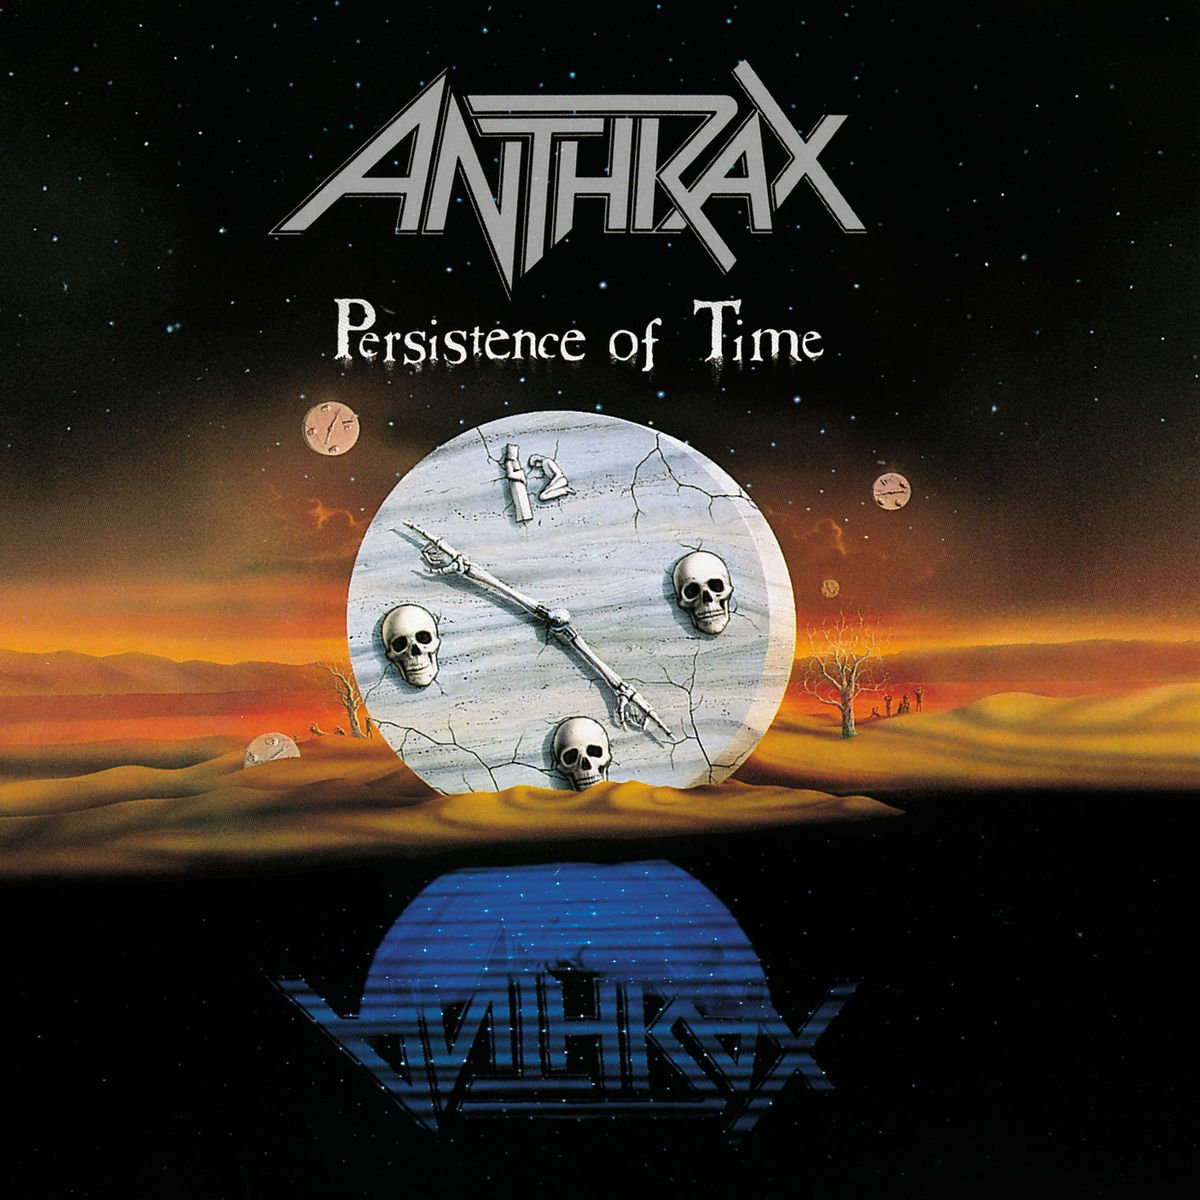 CD : Anthrax - Persistence of Time (CD)